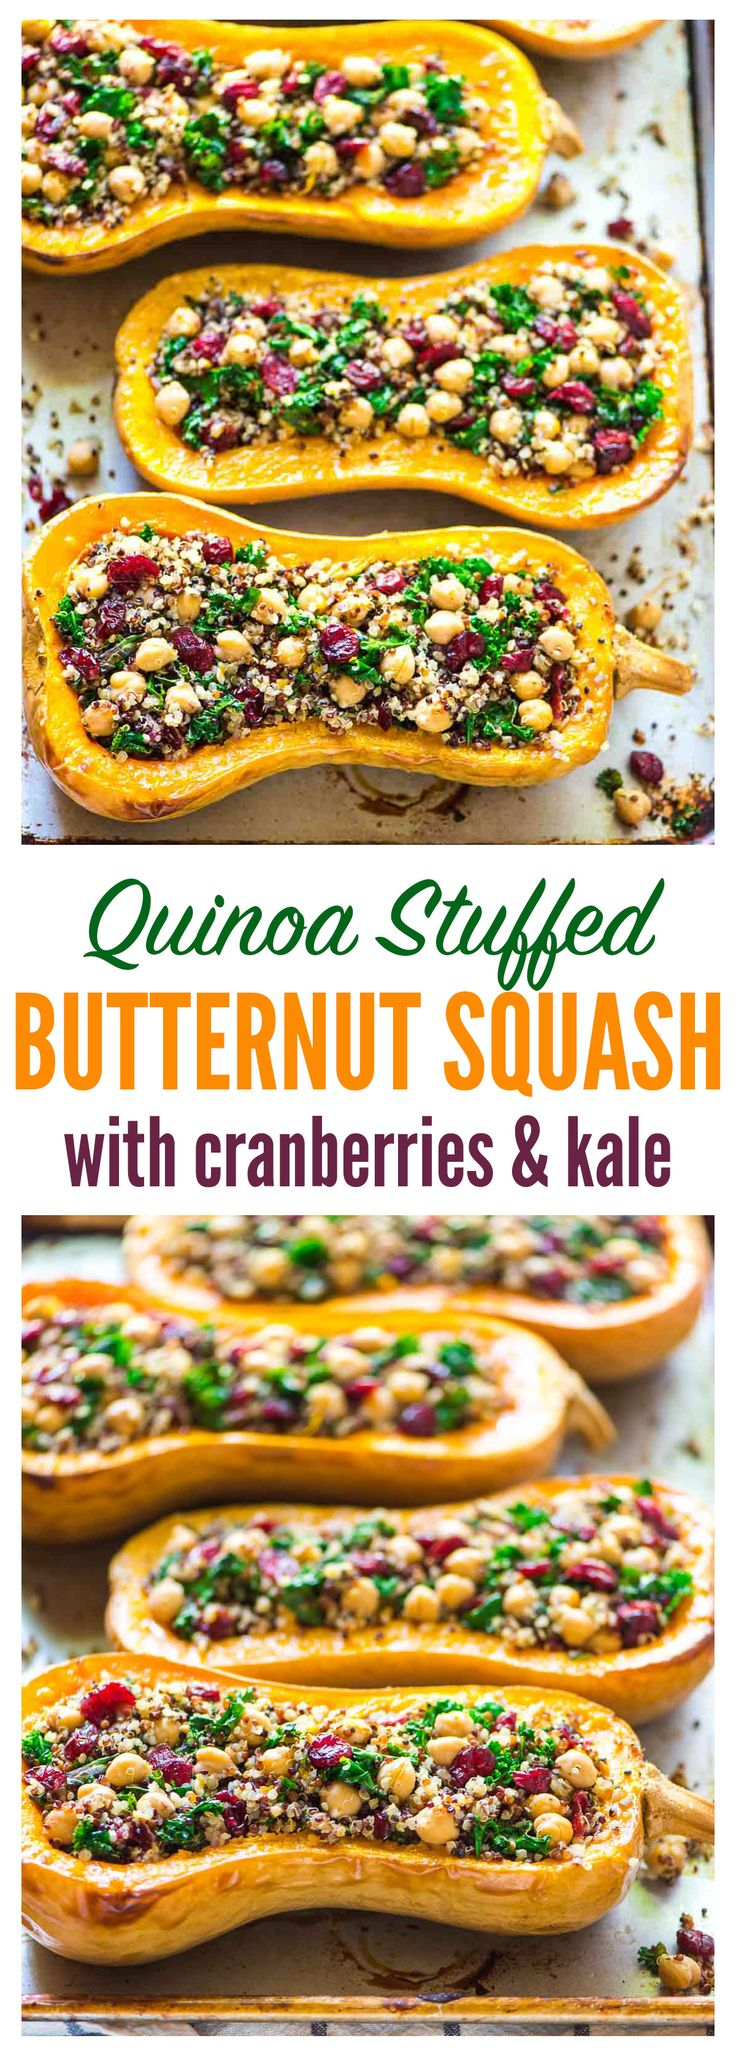 Stuffed Butternut Squash with Quinoa, Cranberries, Kale, and Chickpeas! Oh I love the sound of this! Would be wonderful! So delicious!! Its so easy to make & even healthy!! Its by wellplated.com!!!